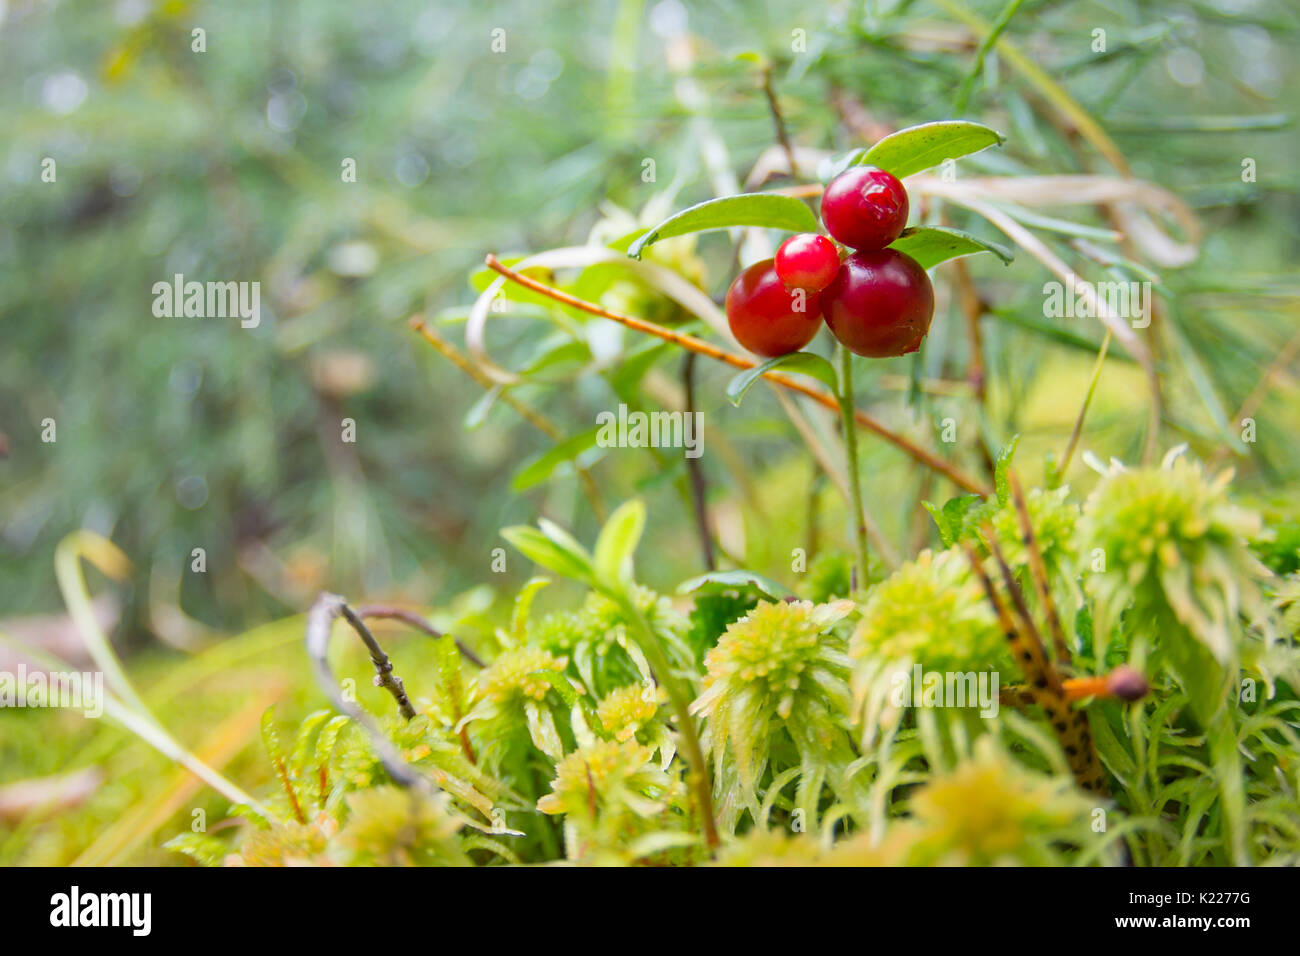 Ripe red cowberry grows in pine forest. - Stock Image